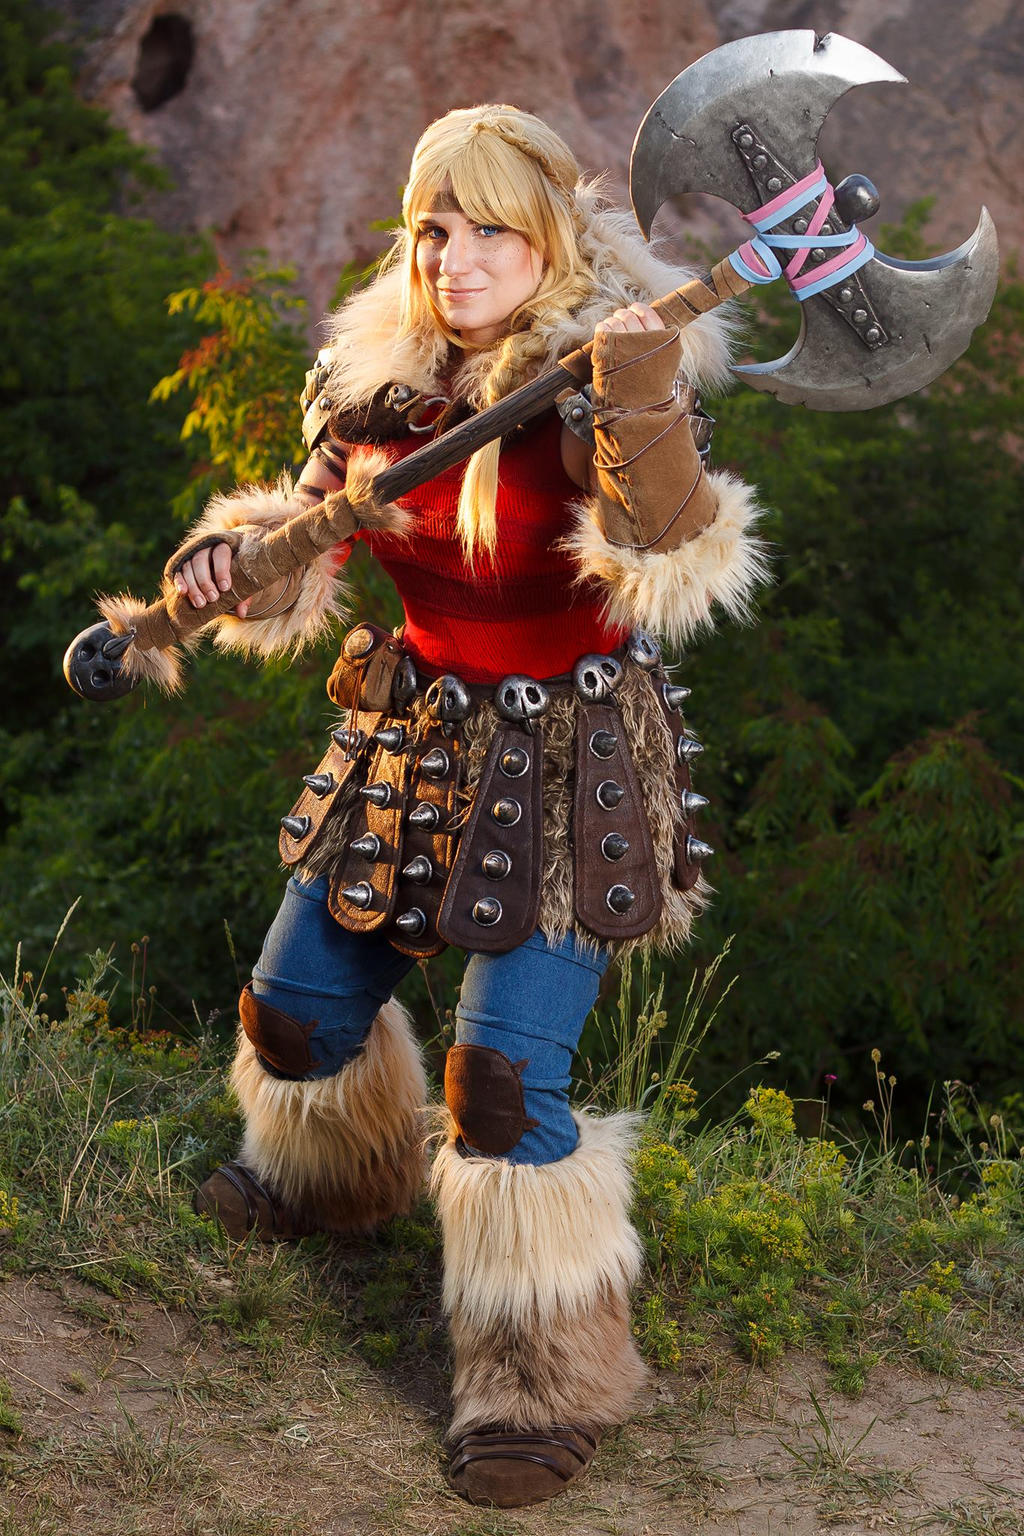 Astrid hofferson by aoime on deviantart astrid hofferson by aoime astrid hofferson by aoime ccuart Choice Image